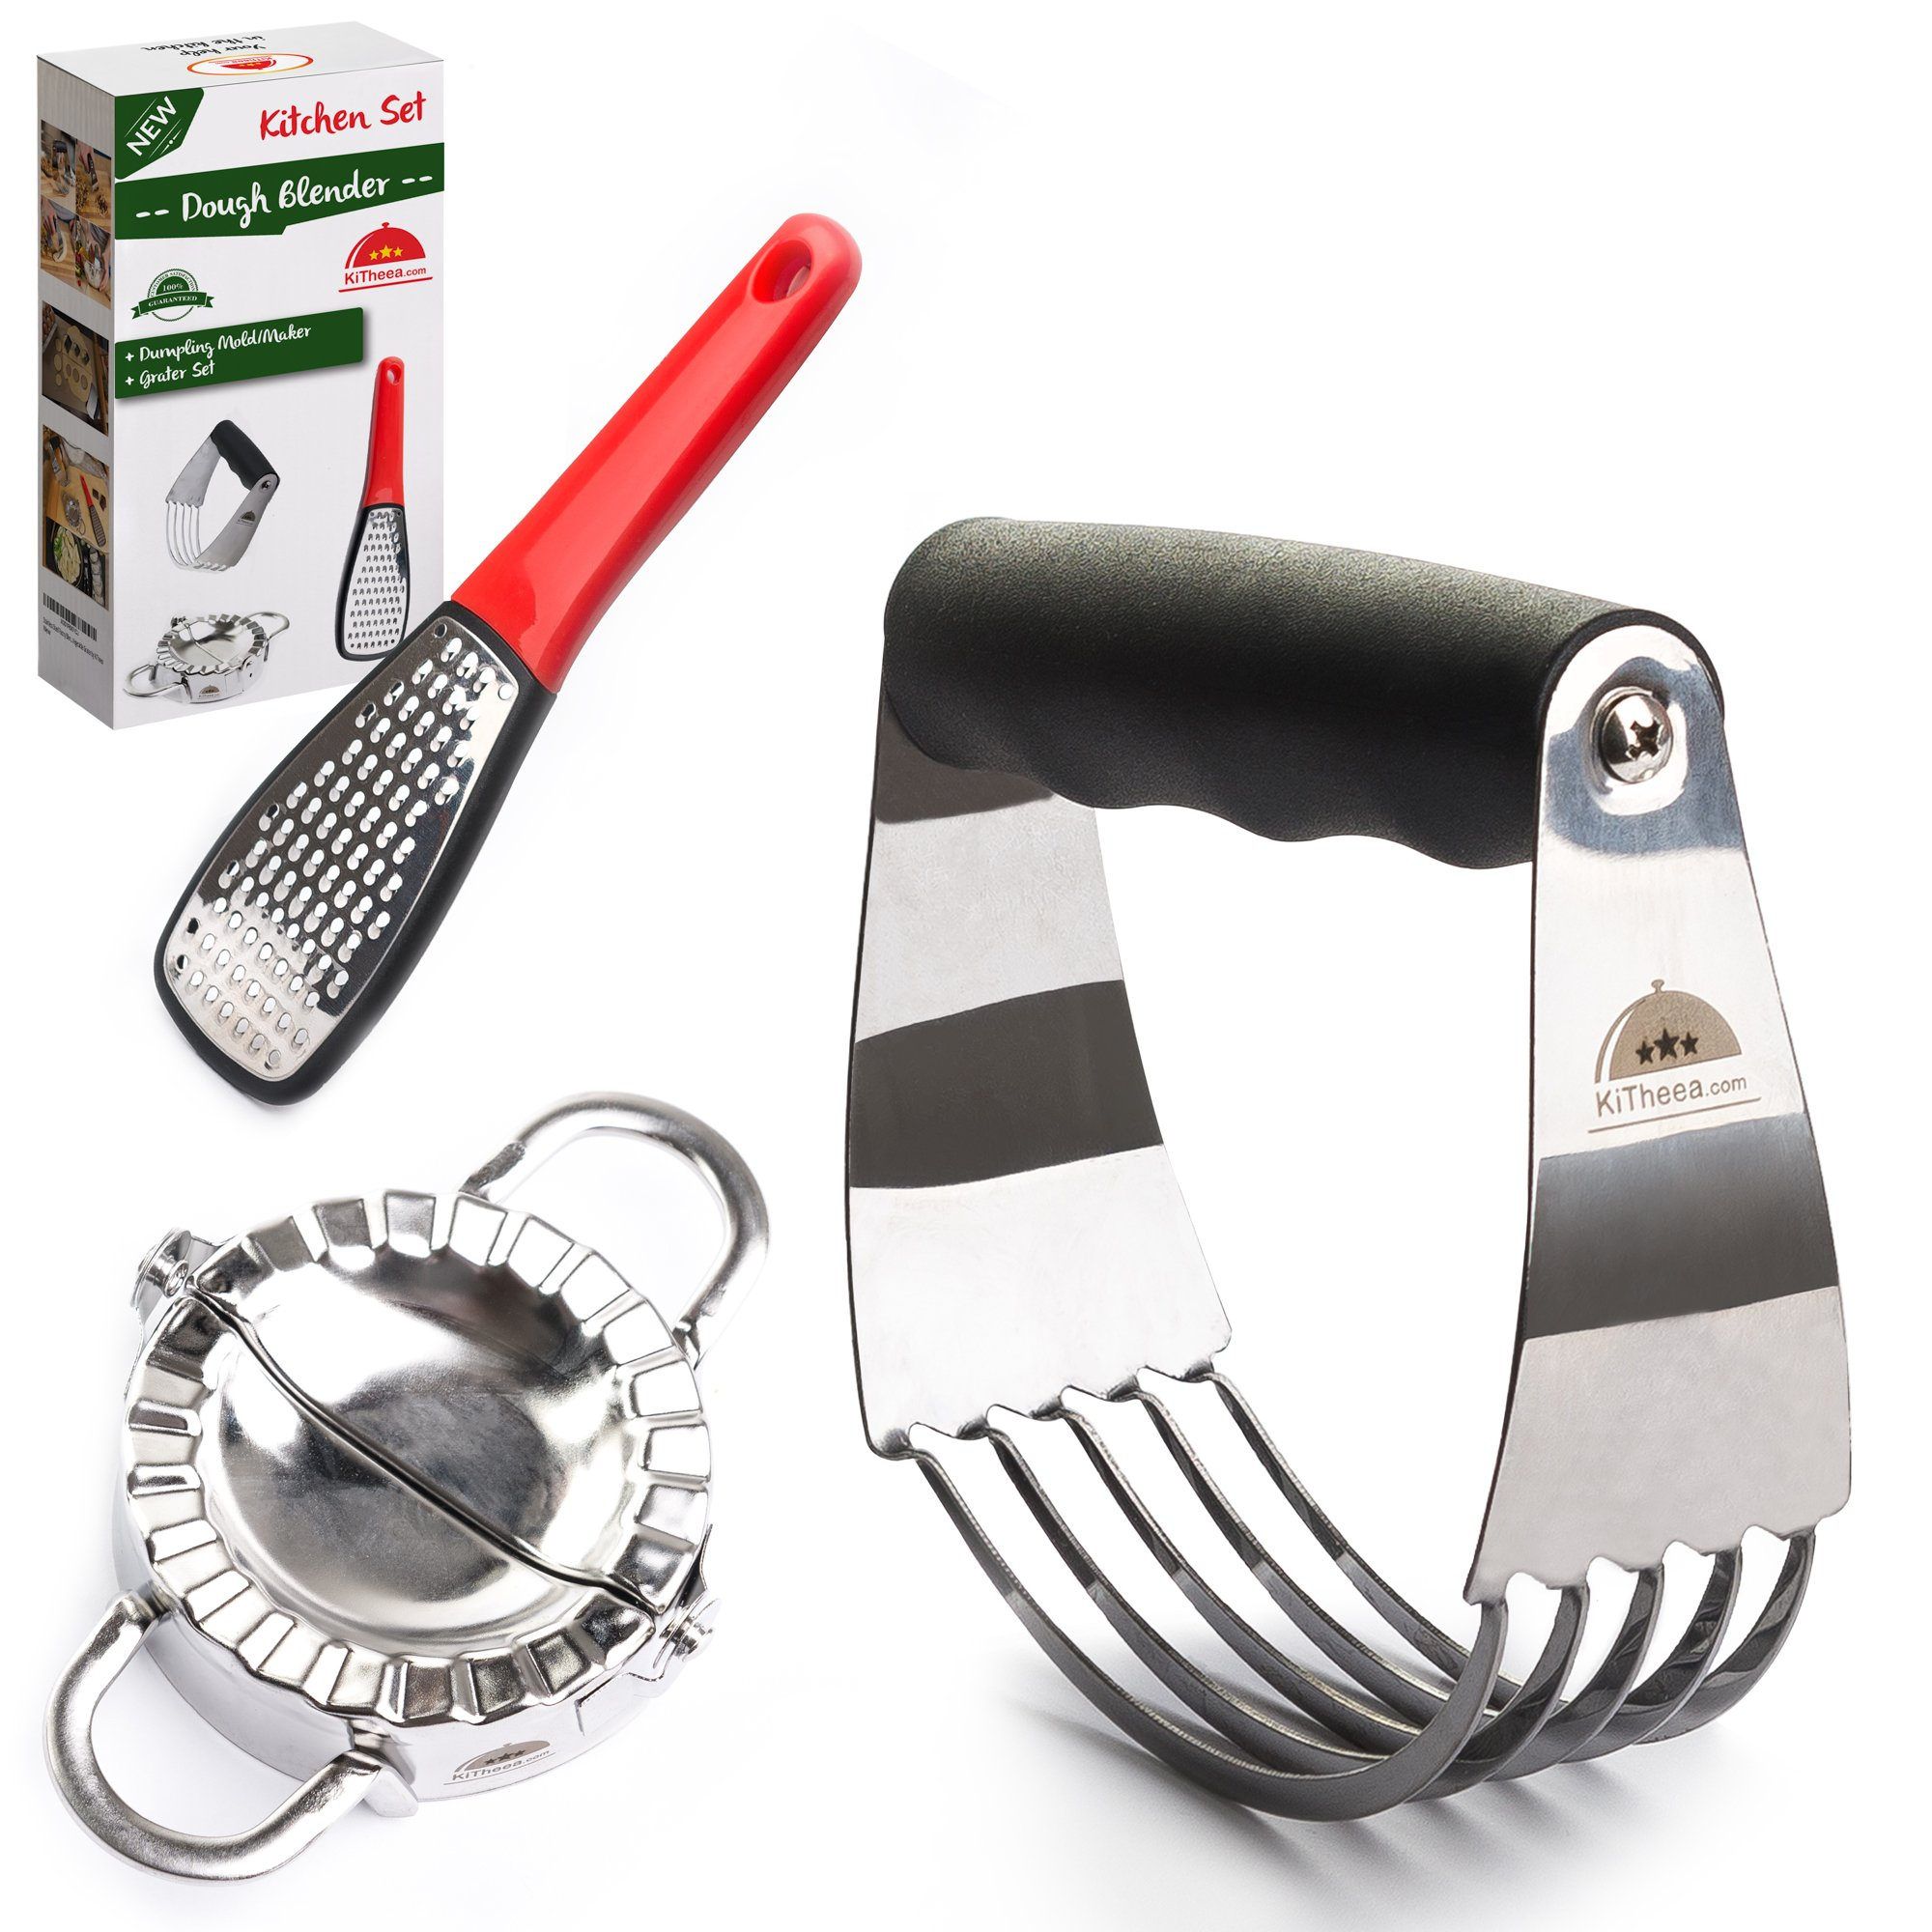 Stainless Steel Pastry Cutter Set Professional - Dough Blender and Biscuit Cutters - Perfect as a Pie Crust Cutters or Butter Slicer - Dumpling Ravioli Maker by KiTheea.com